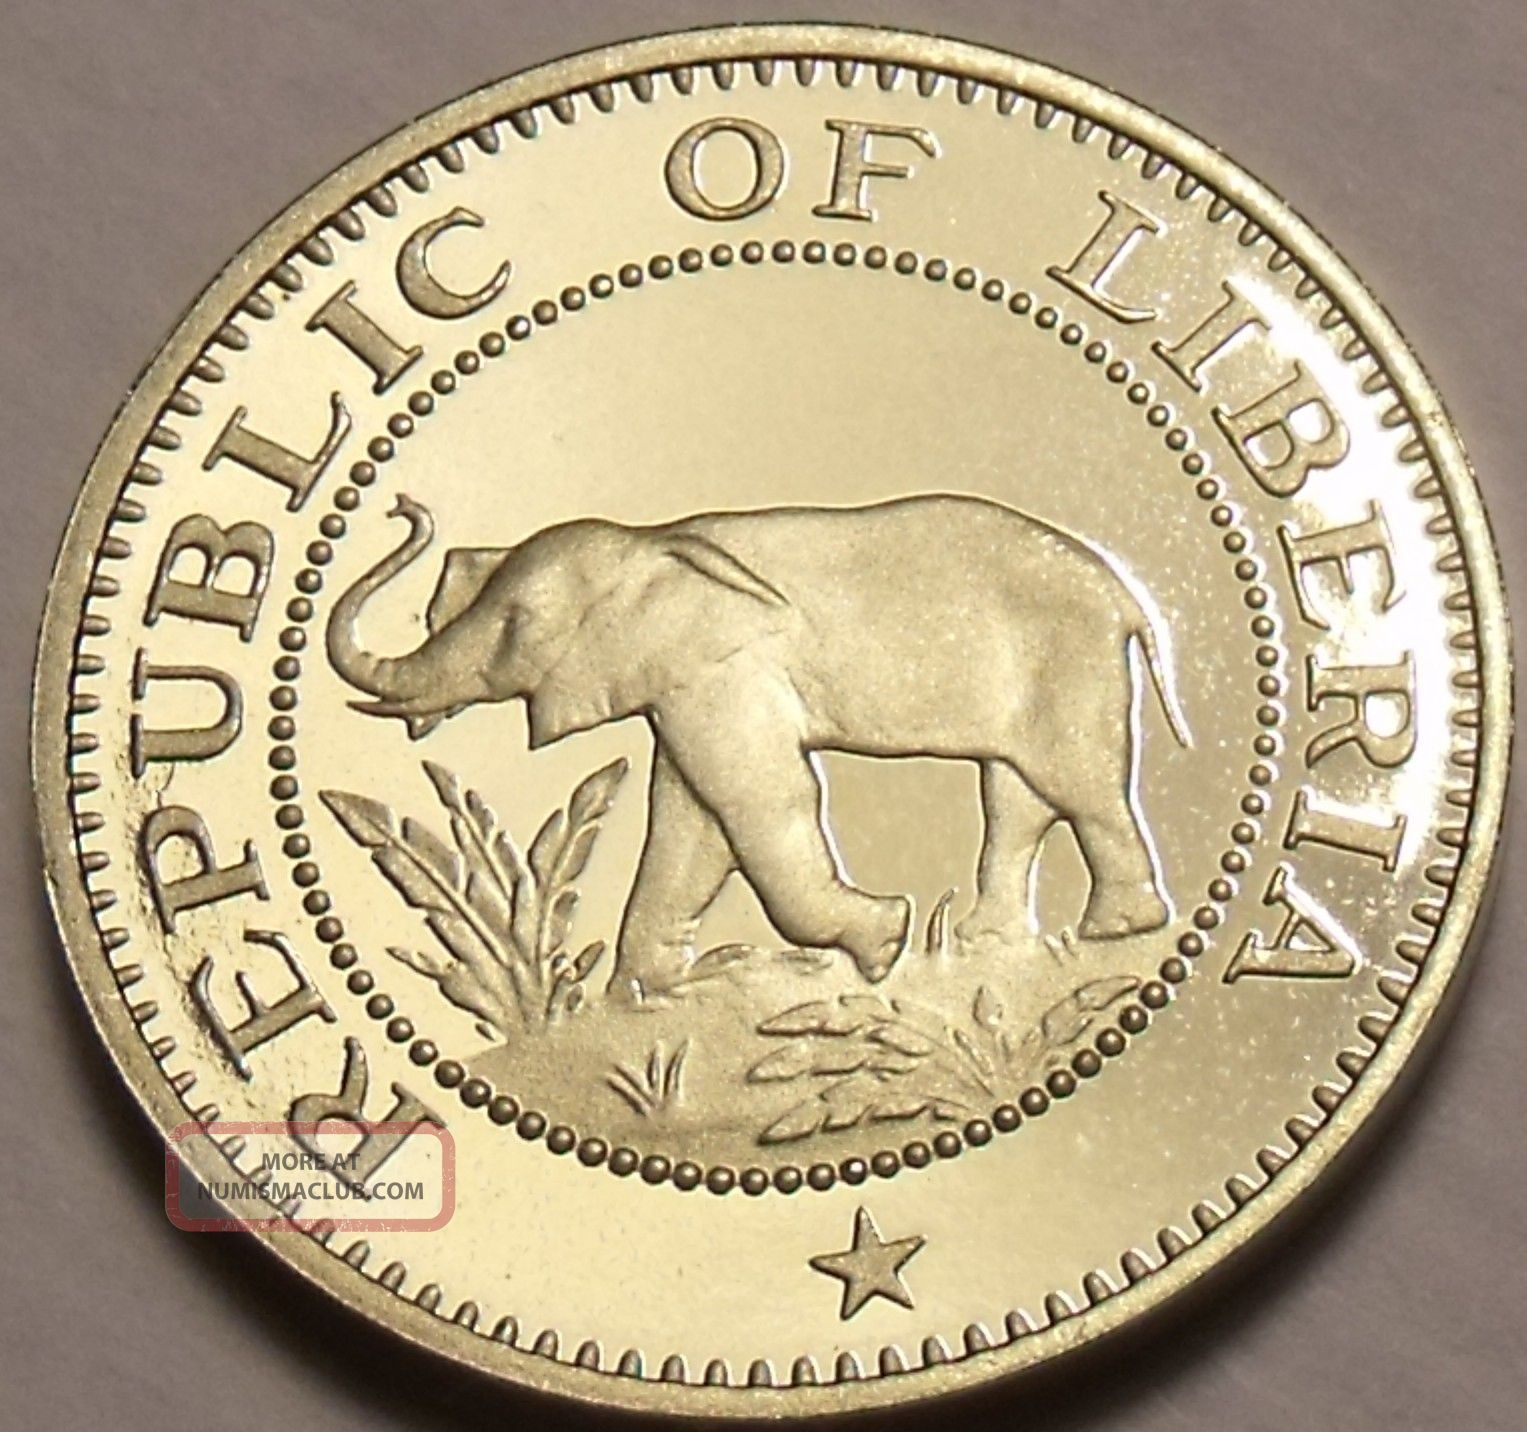 Extremely Rare Proof Liberia 1977 5 Cents Elephant Coin Only 920 Minted Shi Coins: World photo